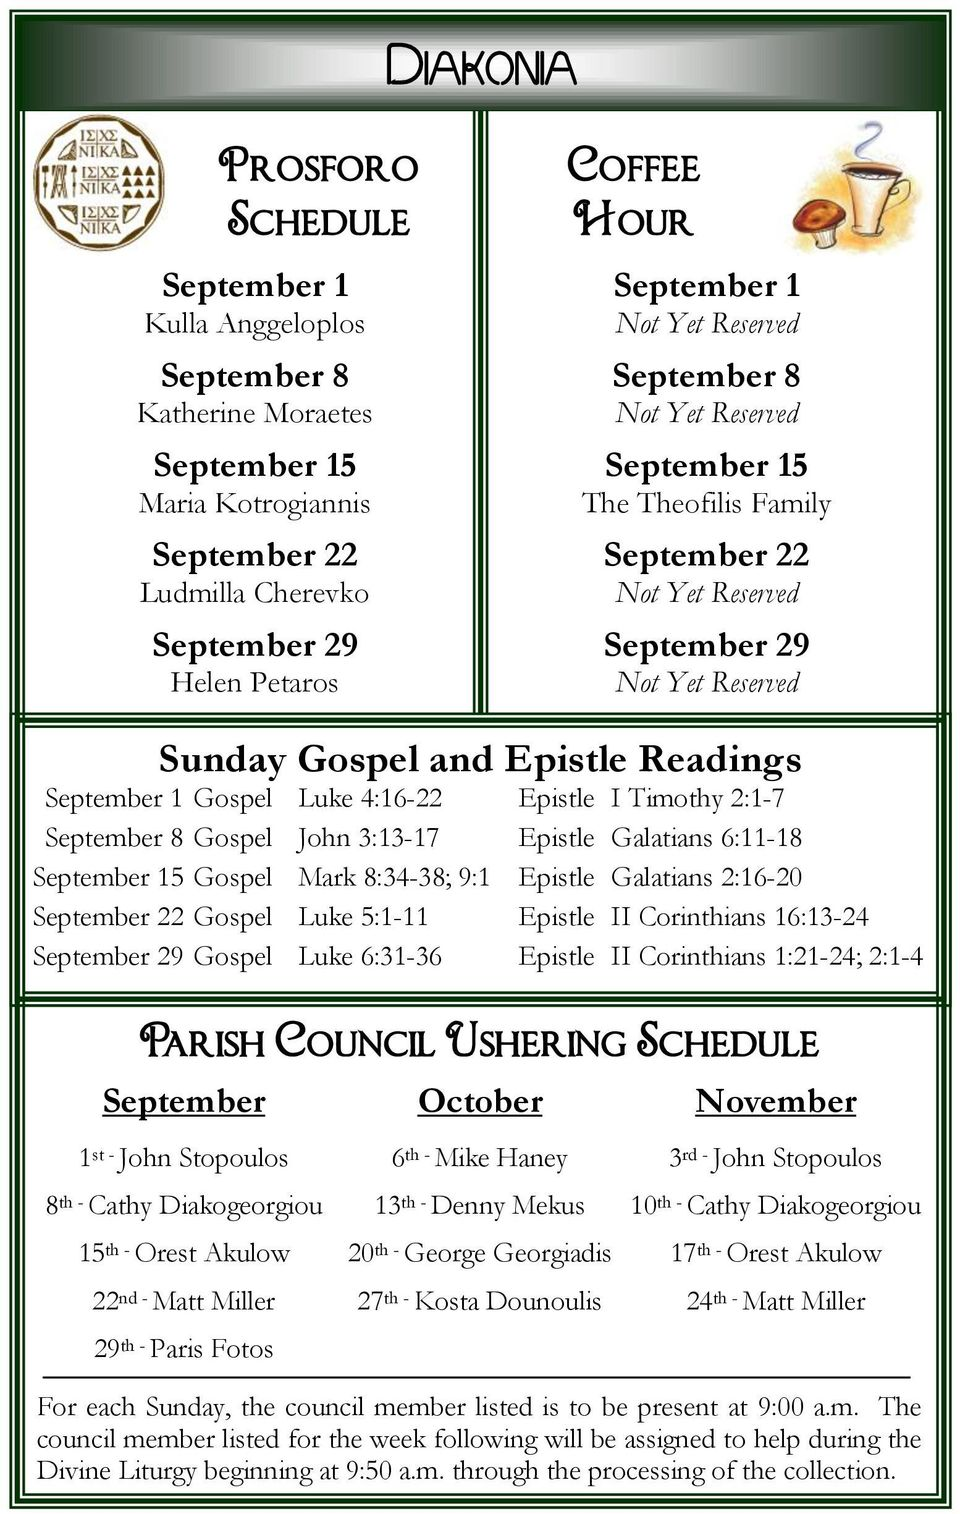 Luke 4:16-22 Epistle I Timothy 2:1-7 September 8 Gospel John 3:13-17 Epistle Galatians 6:11-18 September 15 Gospel Mark 8:34-38; 9:1 Epistle Galatians 2:16-20 September 22 Gospel Luke 5:1-11 Epistle